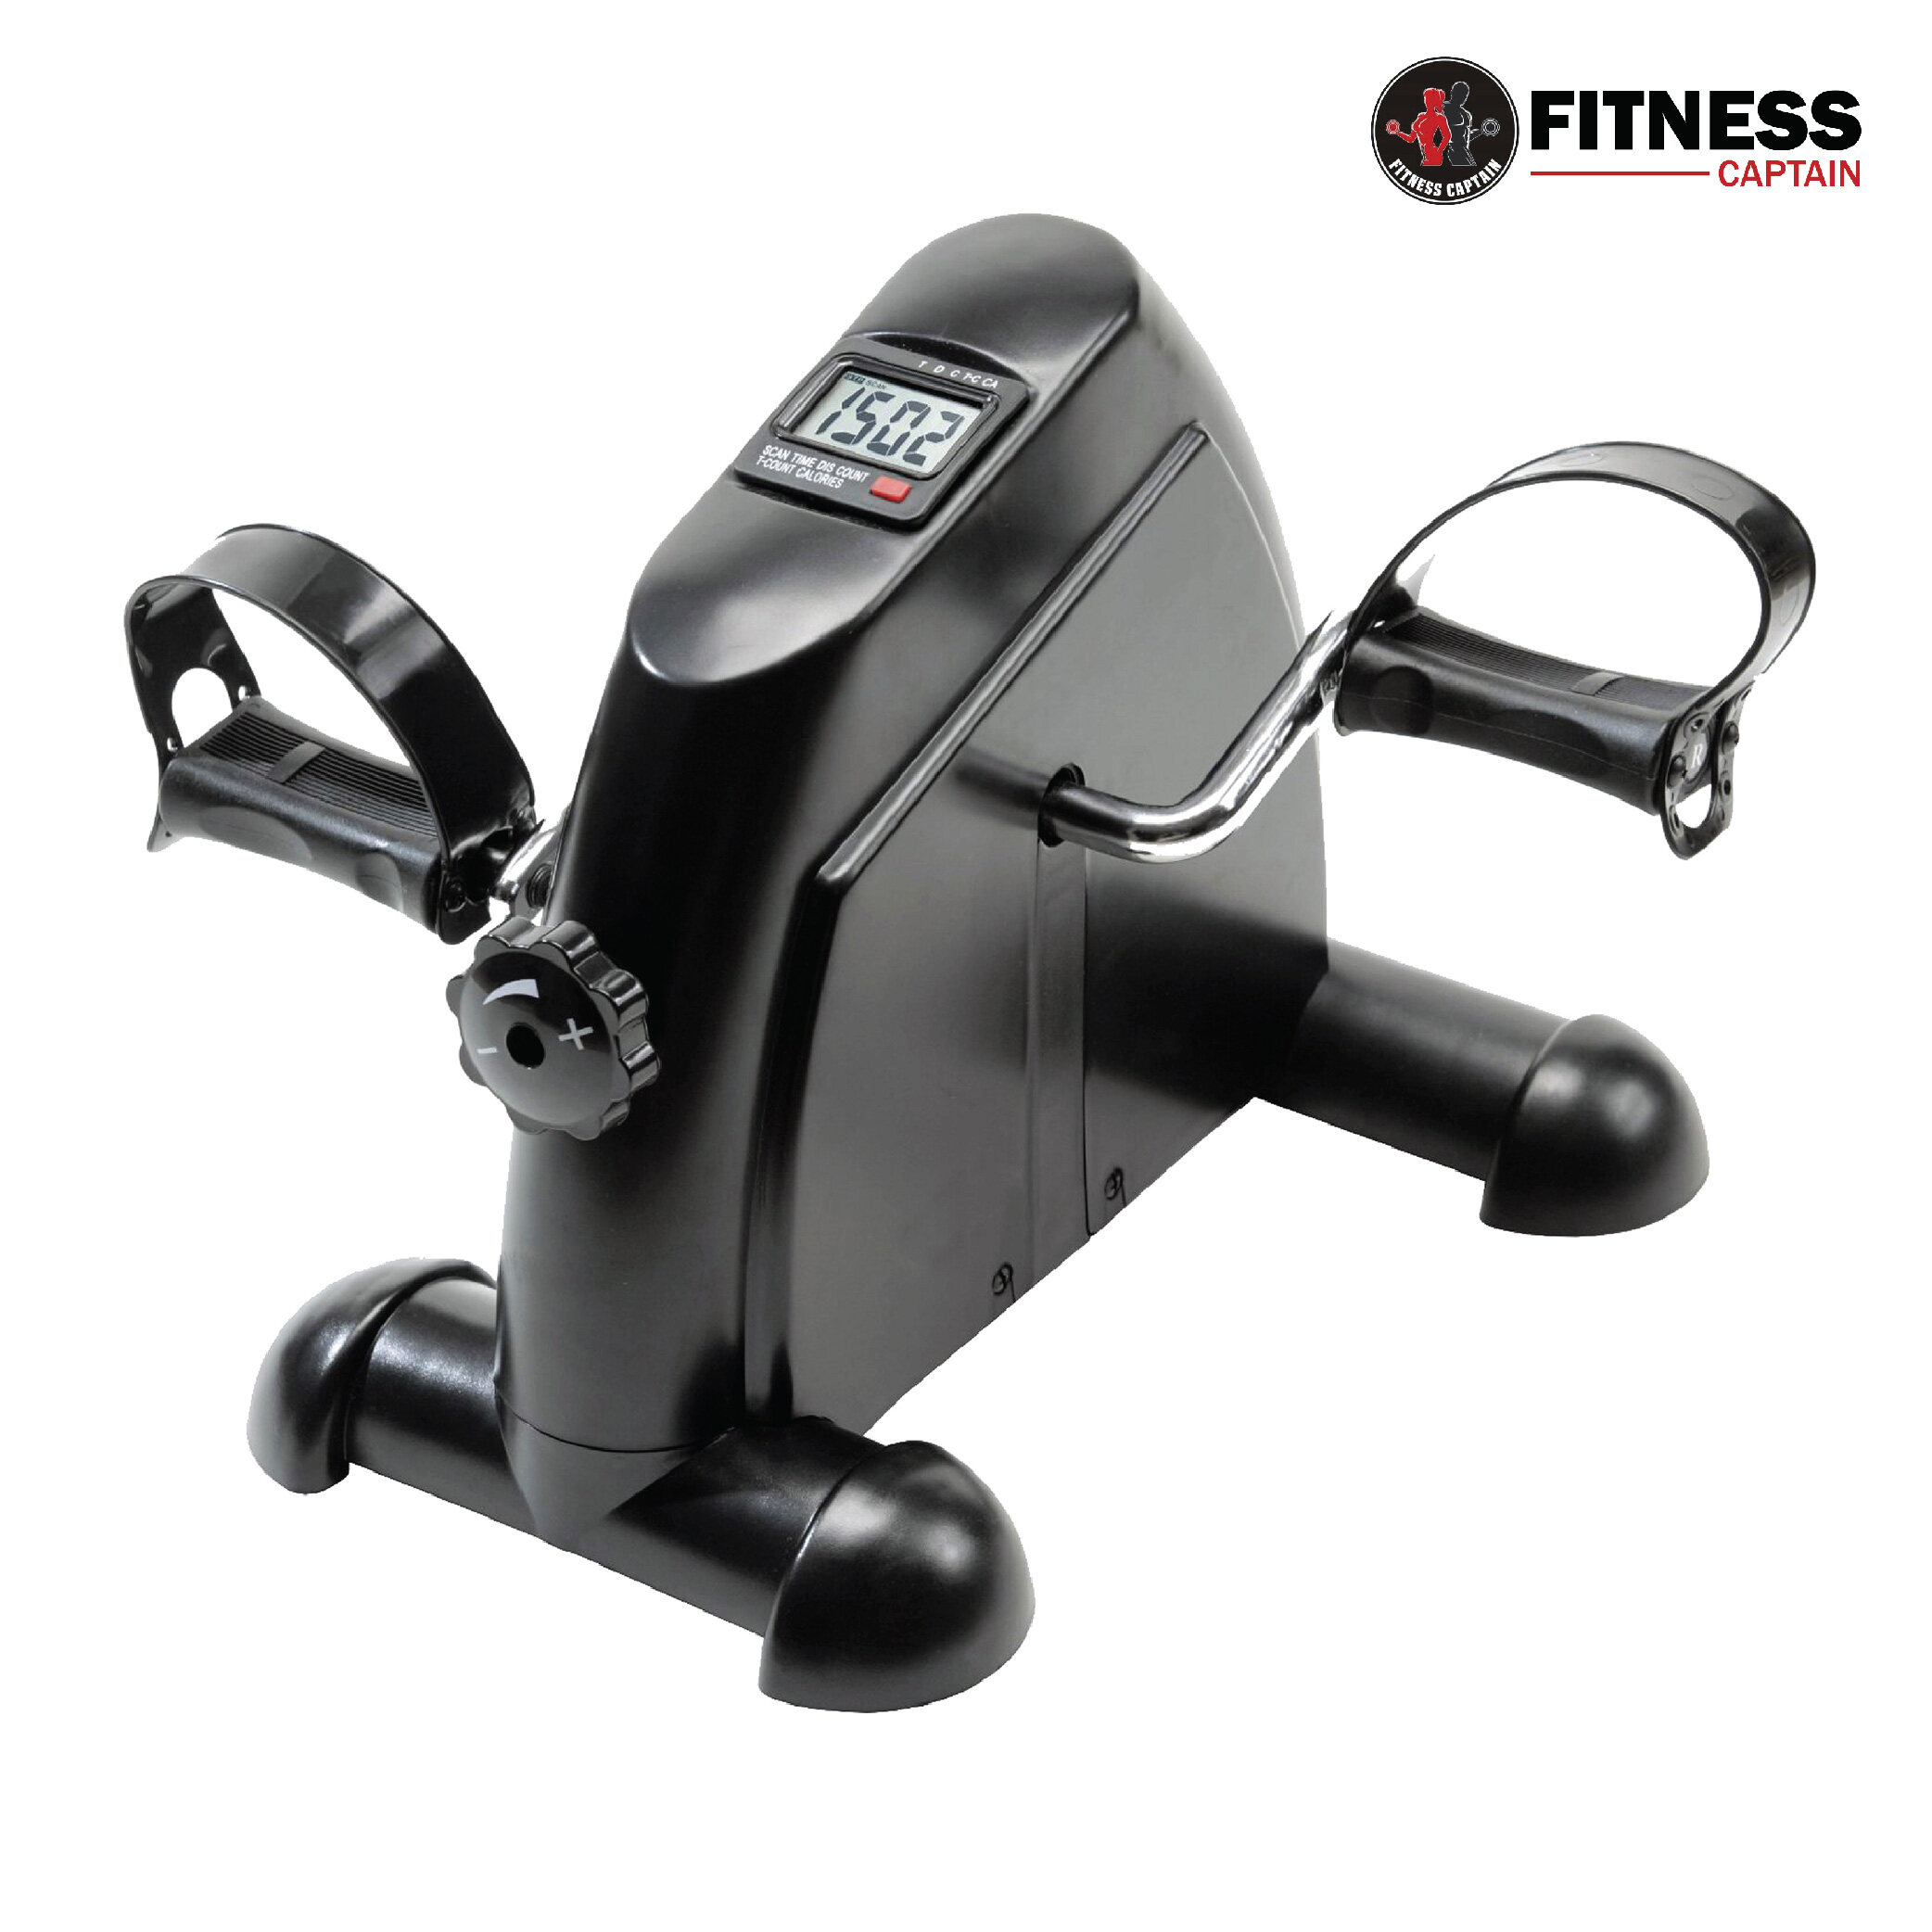 Fitness Captain Mini Portable Hand Foot Cardio Cycle Exercise Pedal Bike (COLOR RANDOM)